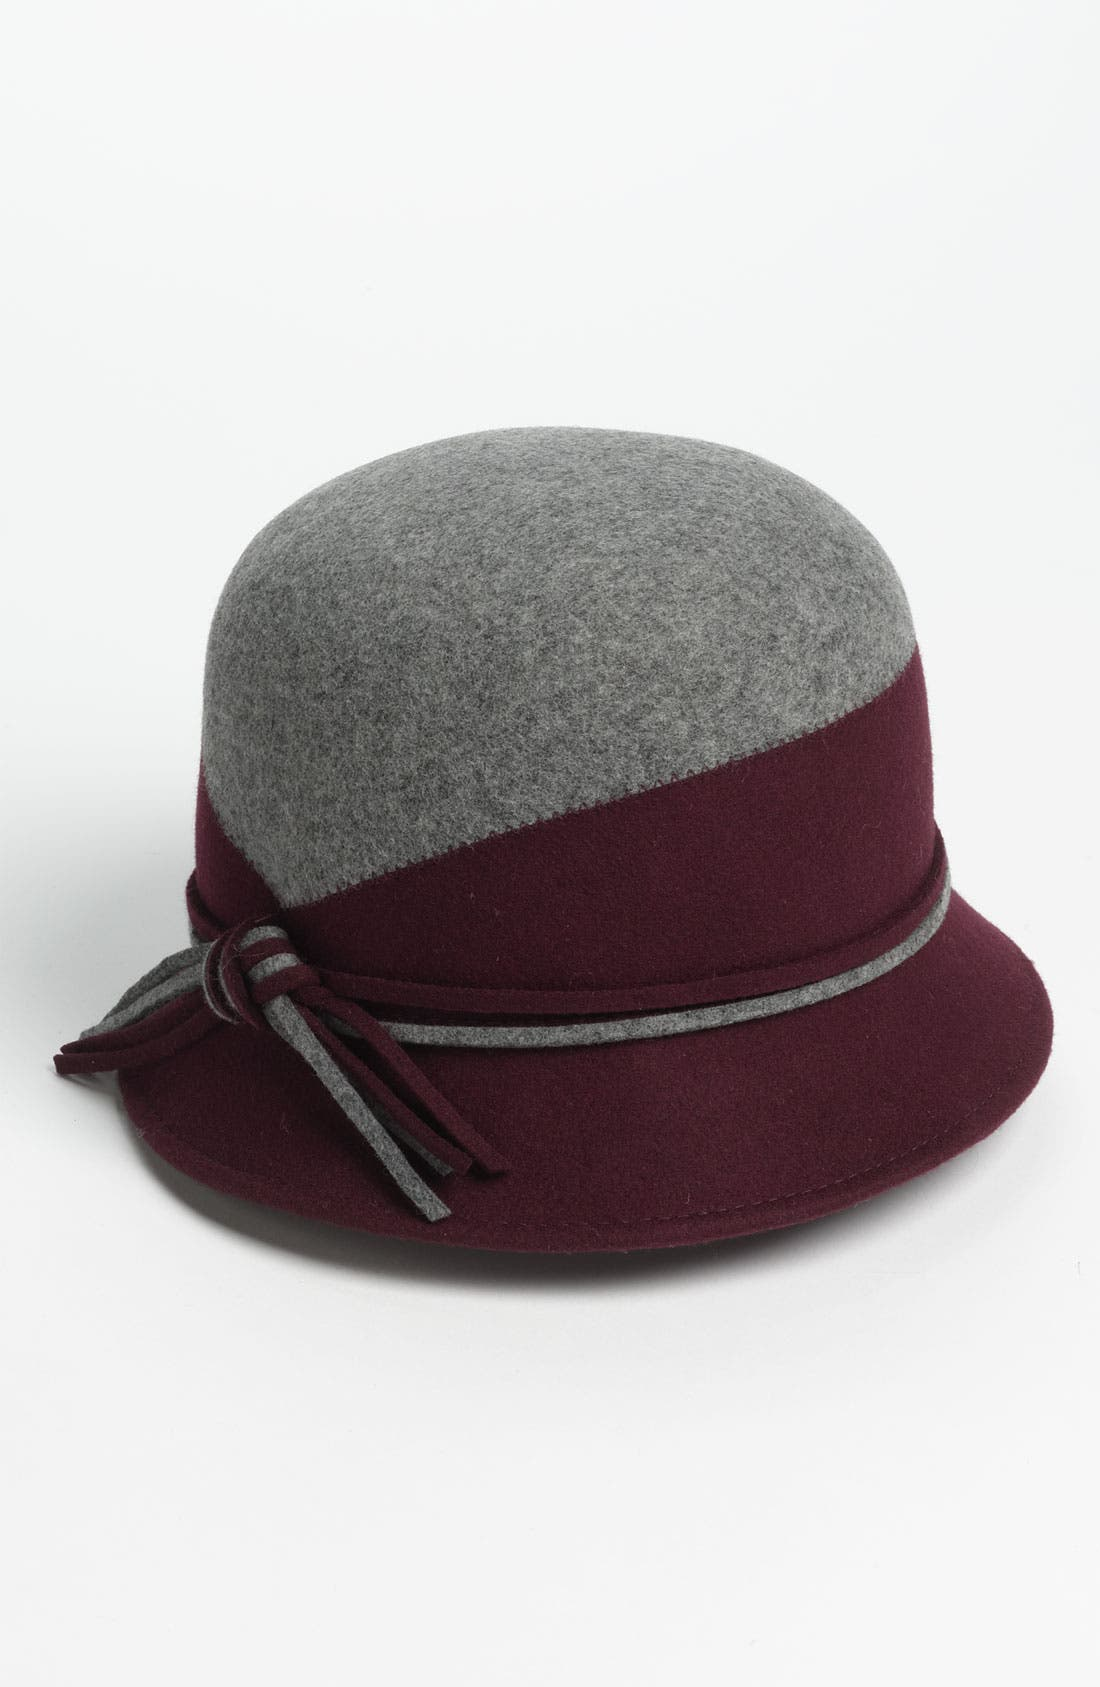 Two Tone Wool Cloche,                         Main,                         color, Grey/ Wine